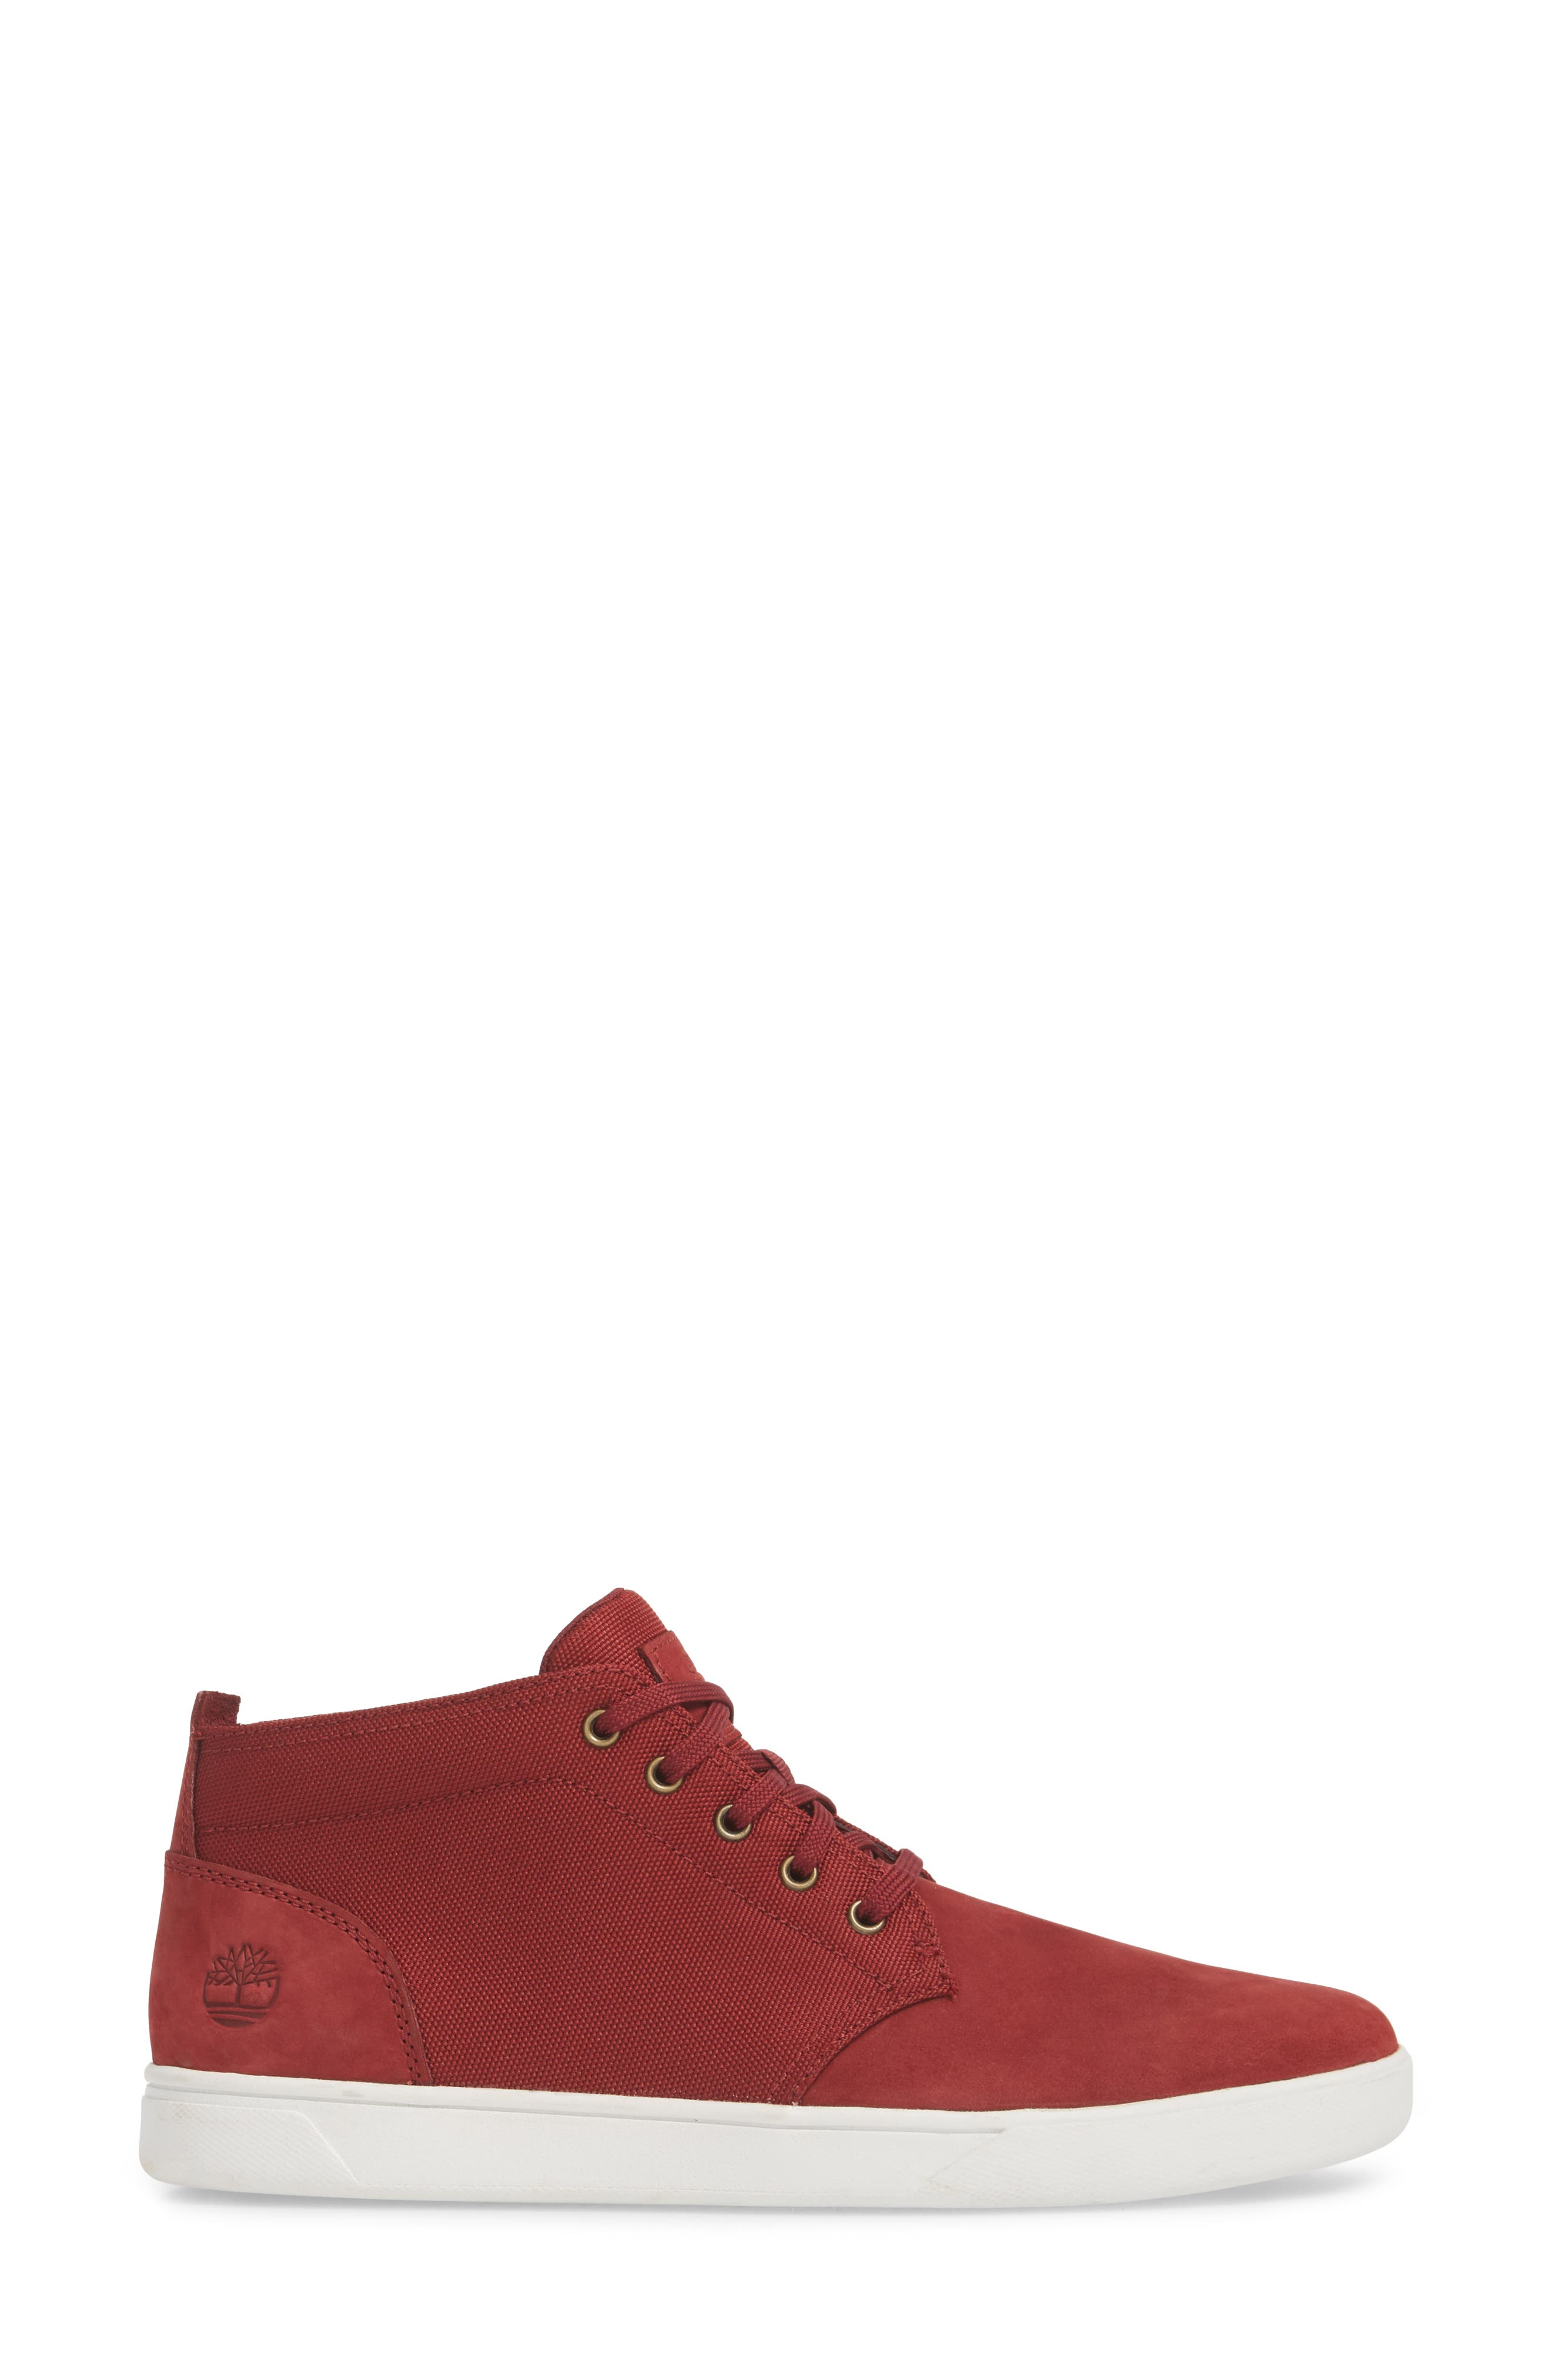 Earthkeepers<sup>™</sup> 'Groveton' Chukka Sneaker,                             Alternate thumbnail 3, color,                             Pomegranate Nubuck